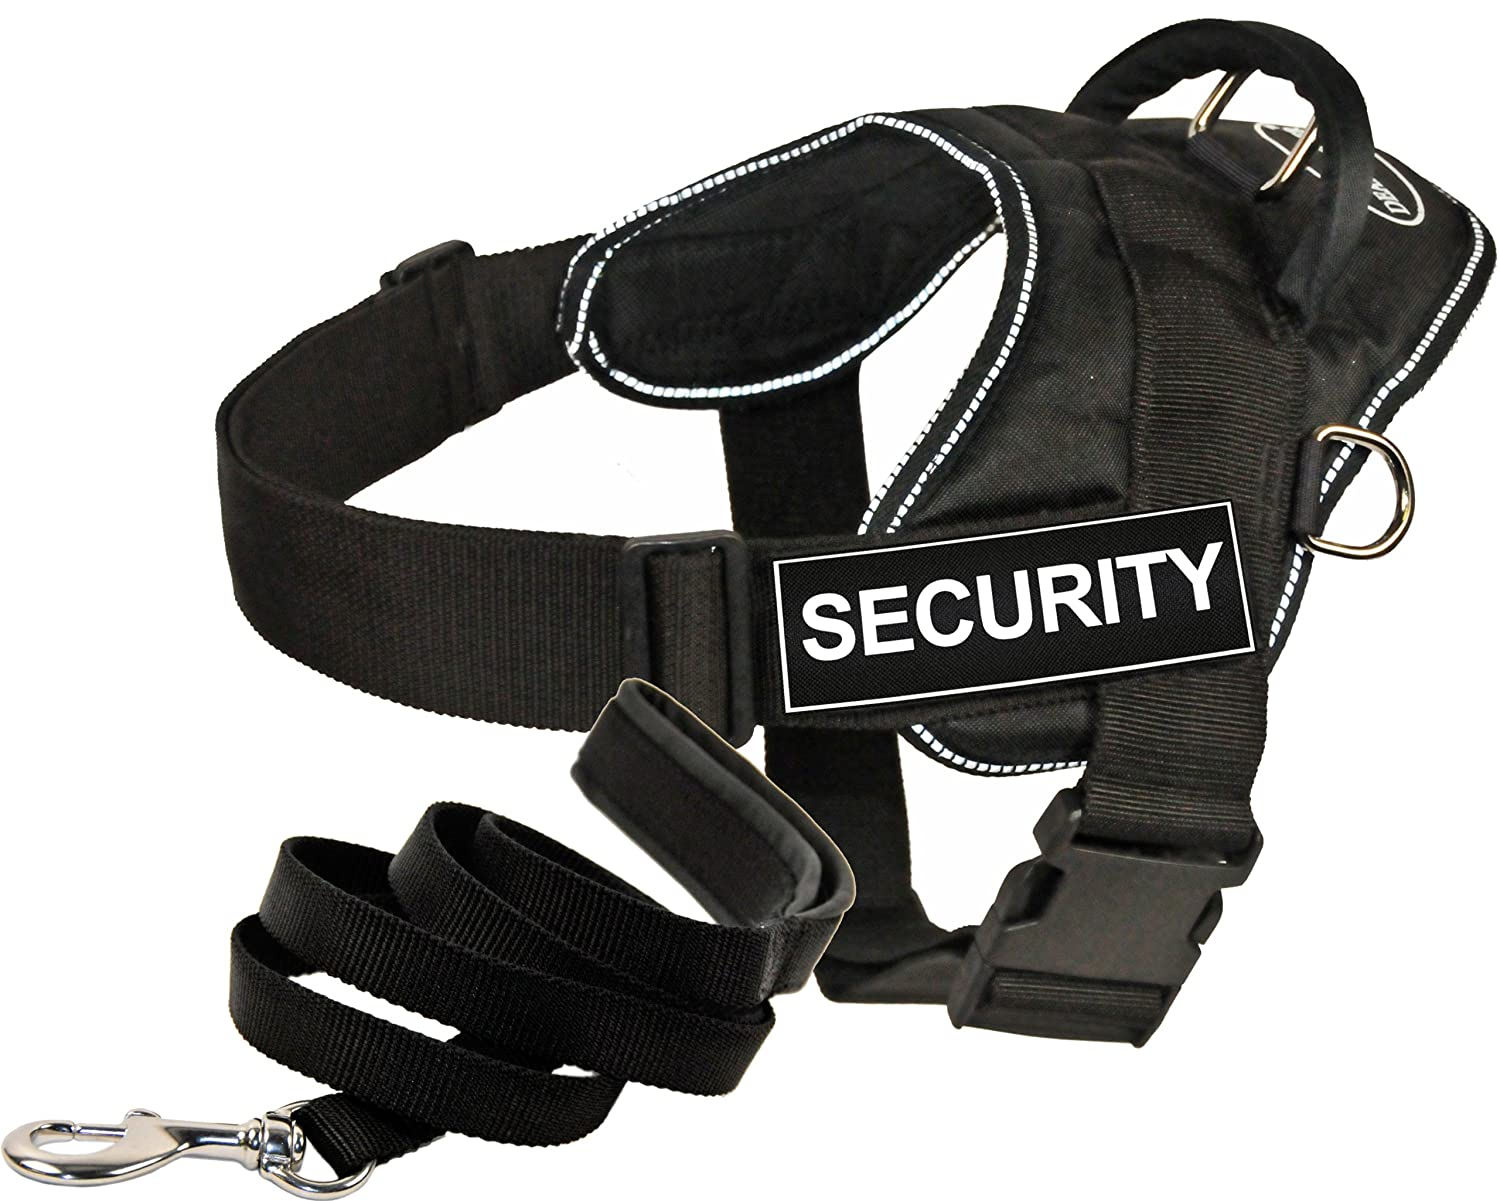 Dean and Tyler Bundle One DT Fun Works  Harness, Security, Reflective, Medium (28  34 ) + One Padded Puppy  Leash, 6 FT Stainless Snap Black